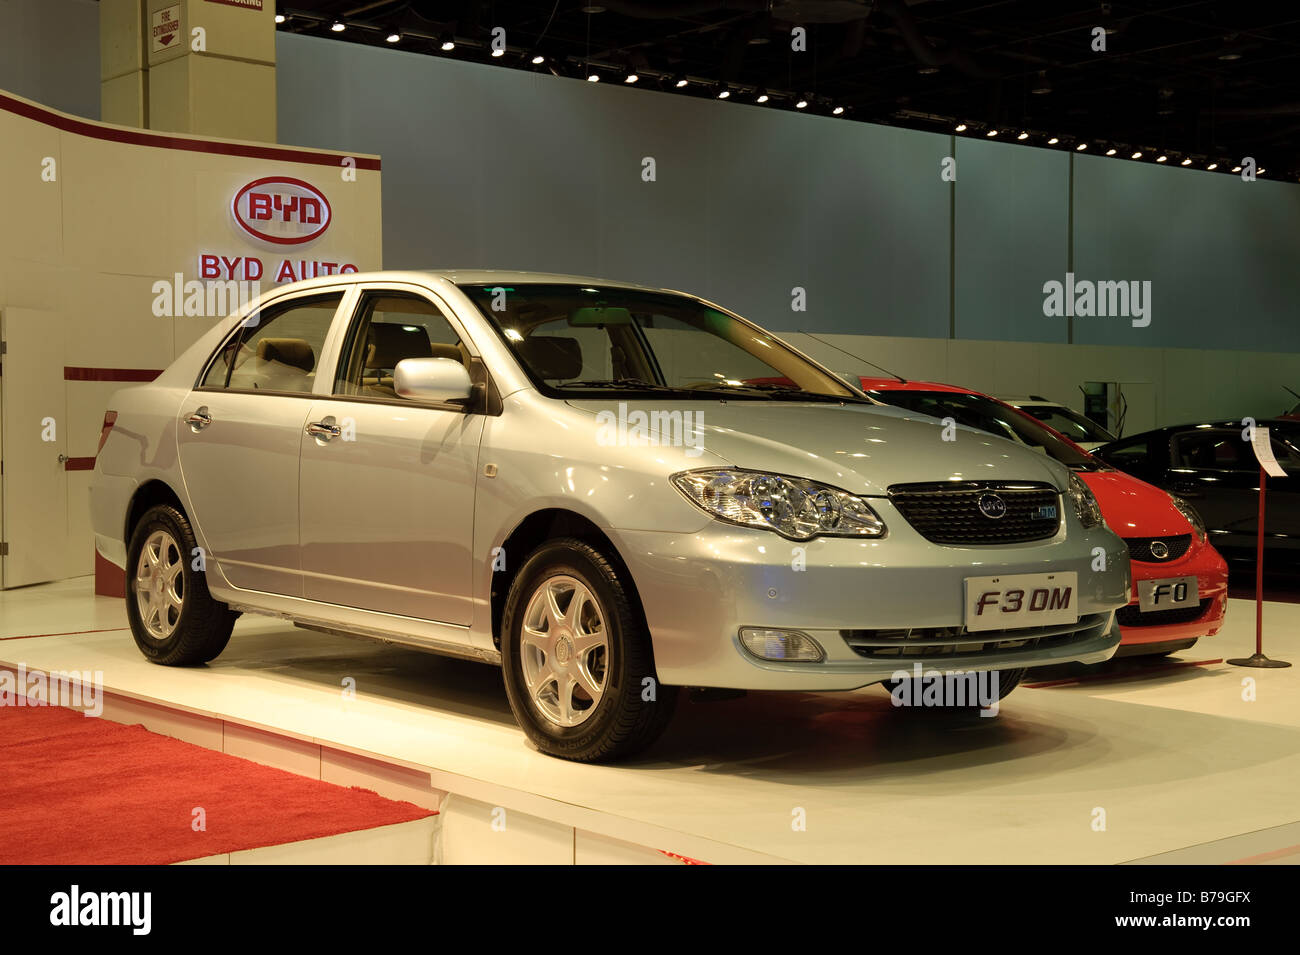 2009 BYD F3 DM at the 2009 North American International Auto Show in Detroit Michigan USA - Stock Image